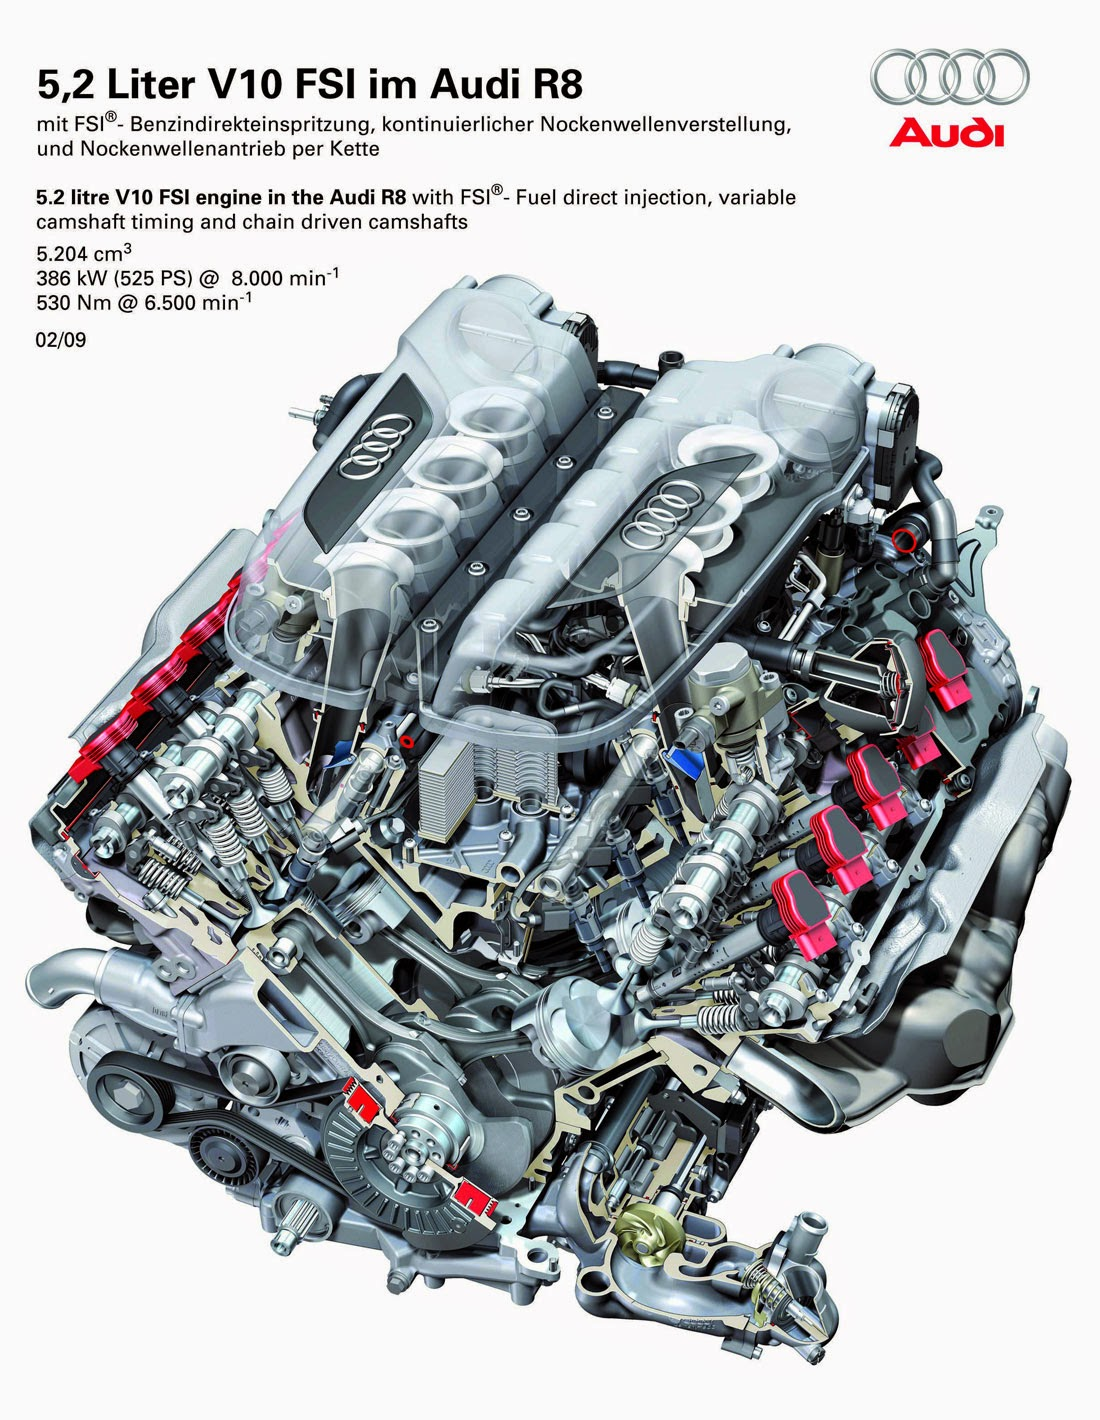 Audi V8 Engine Diagram Guide And Troubleshooting Of Wiring Hemi R8 Avec Le V10 5 2 Litres Fsi 610 Ch Hurac U00e1n Tt Mk3 392